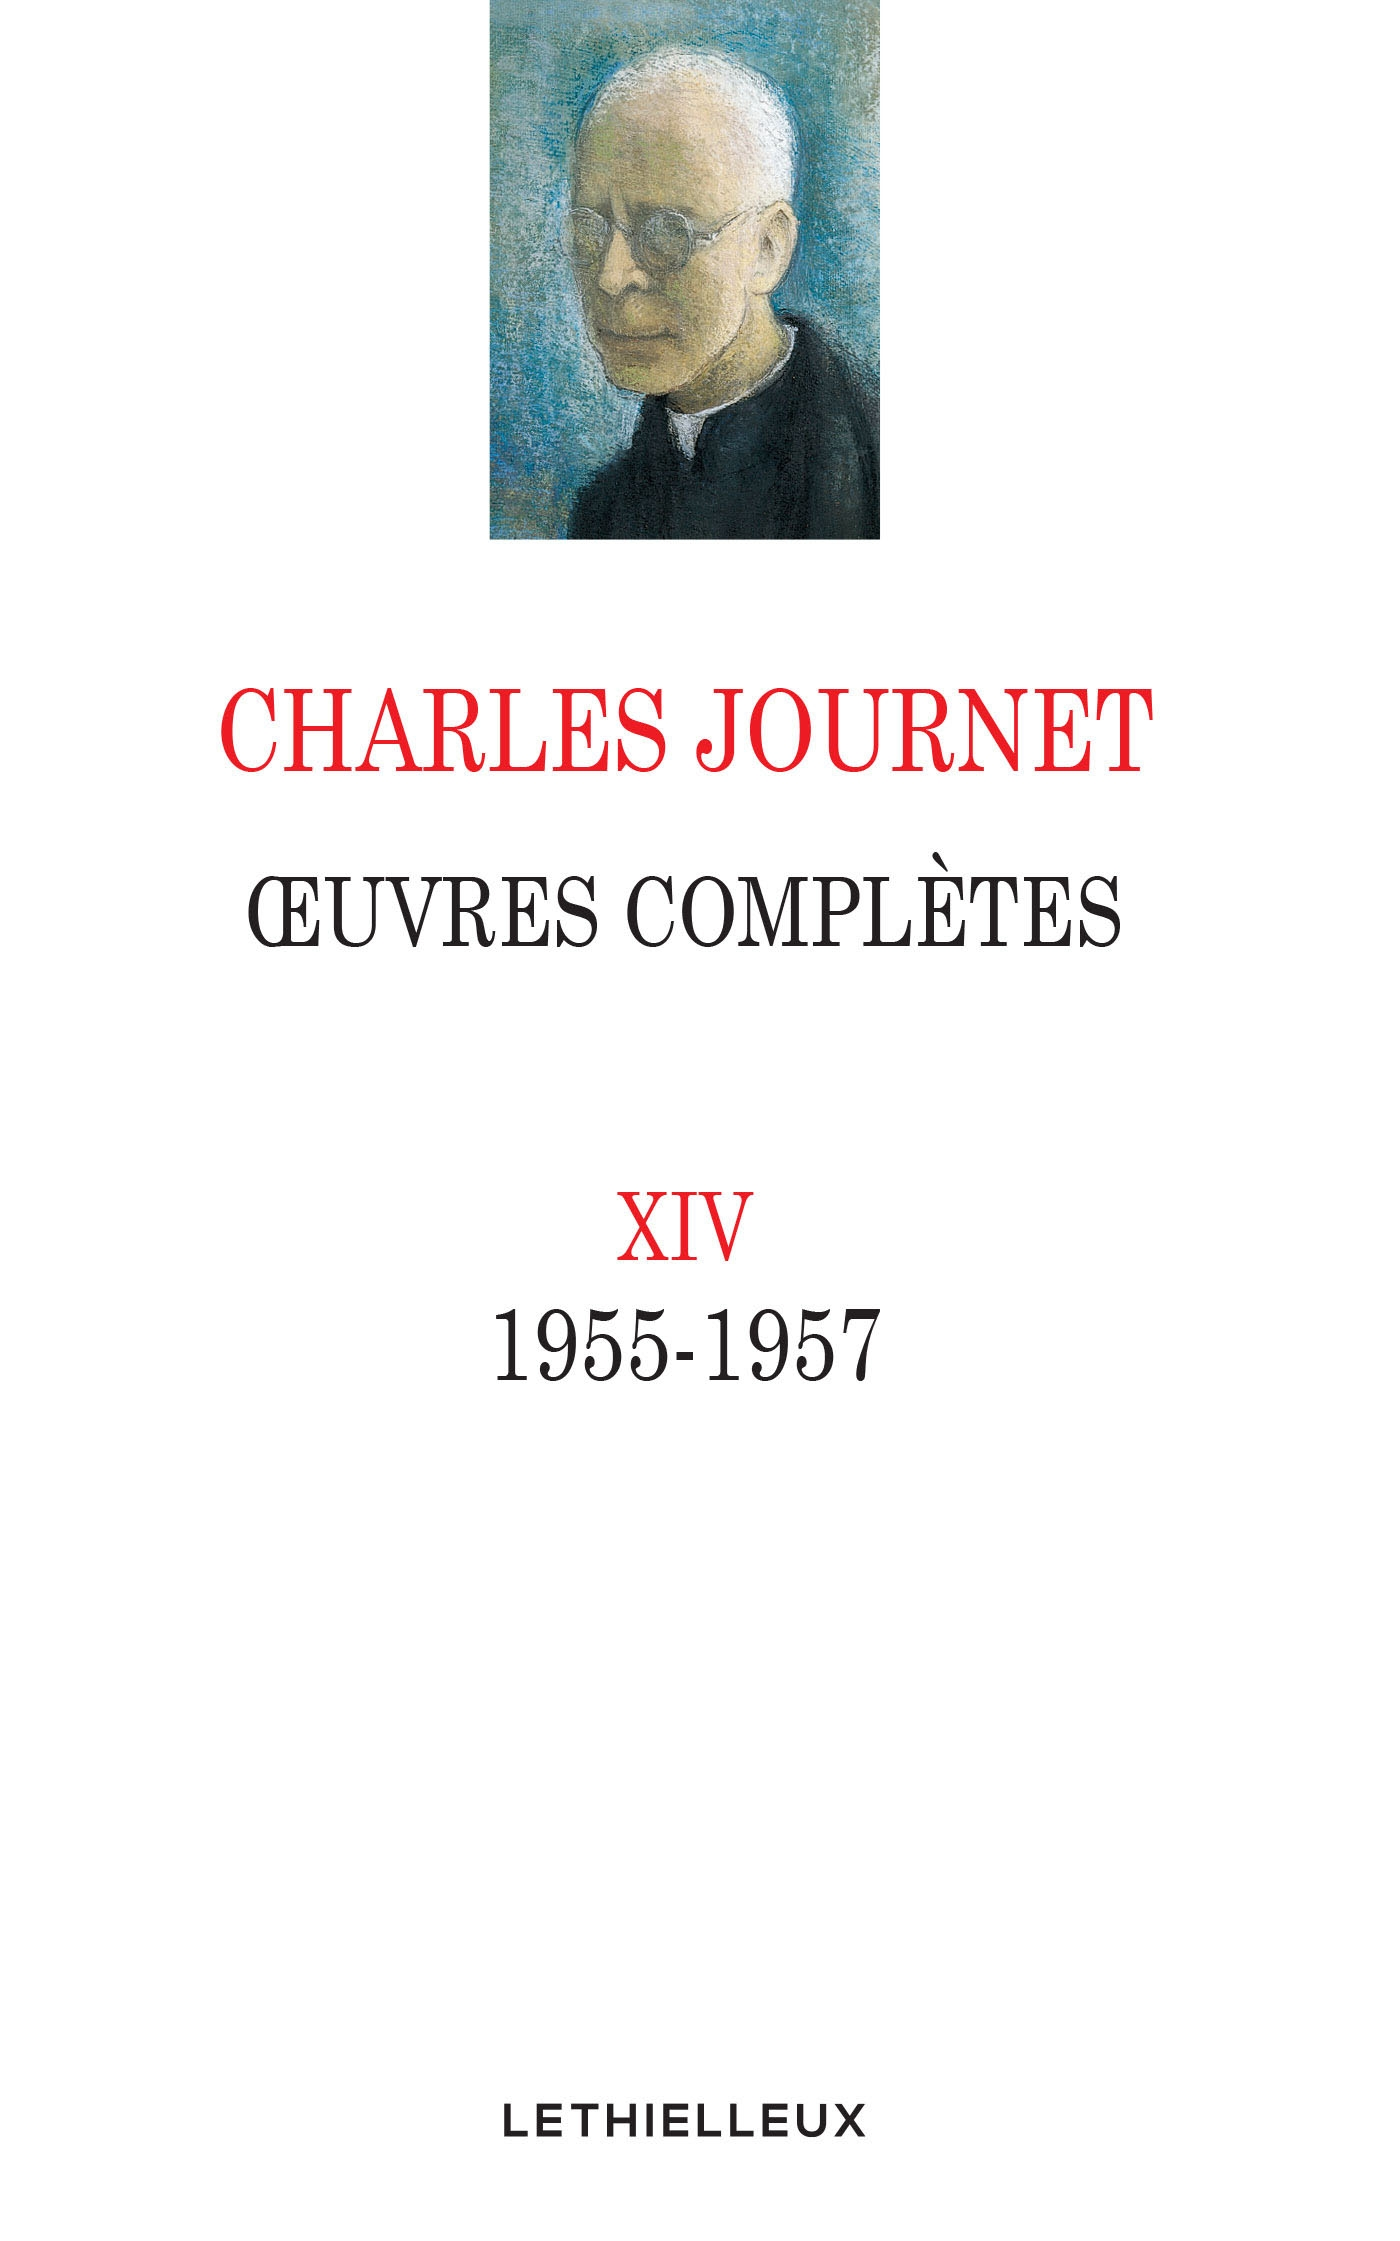 Oeuvres complètes Volume XIV